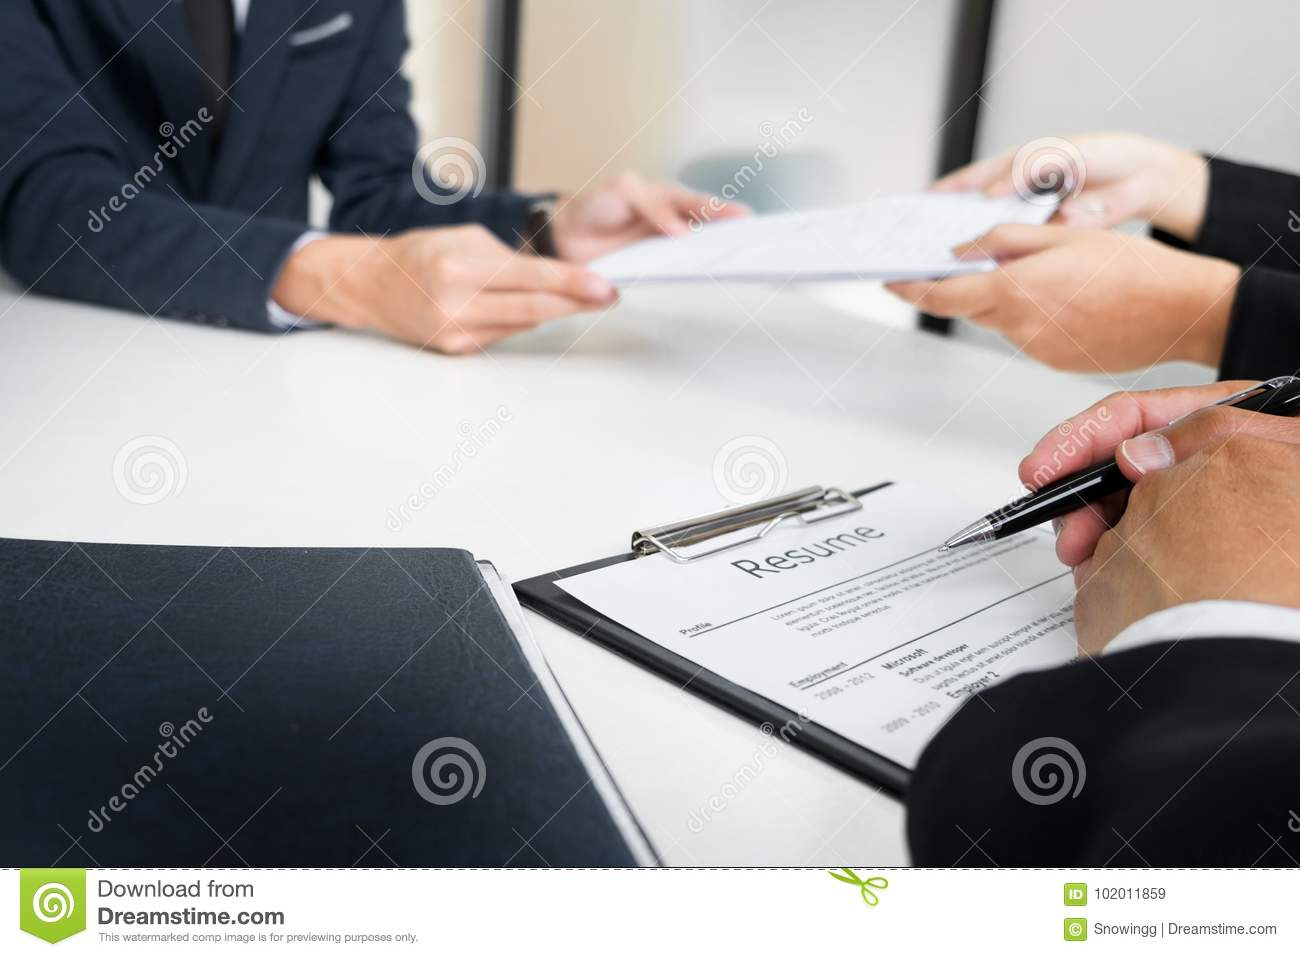 Hands of man giving application portfolio to HR man in office for interview.